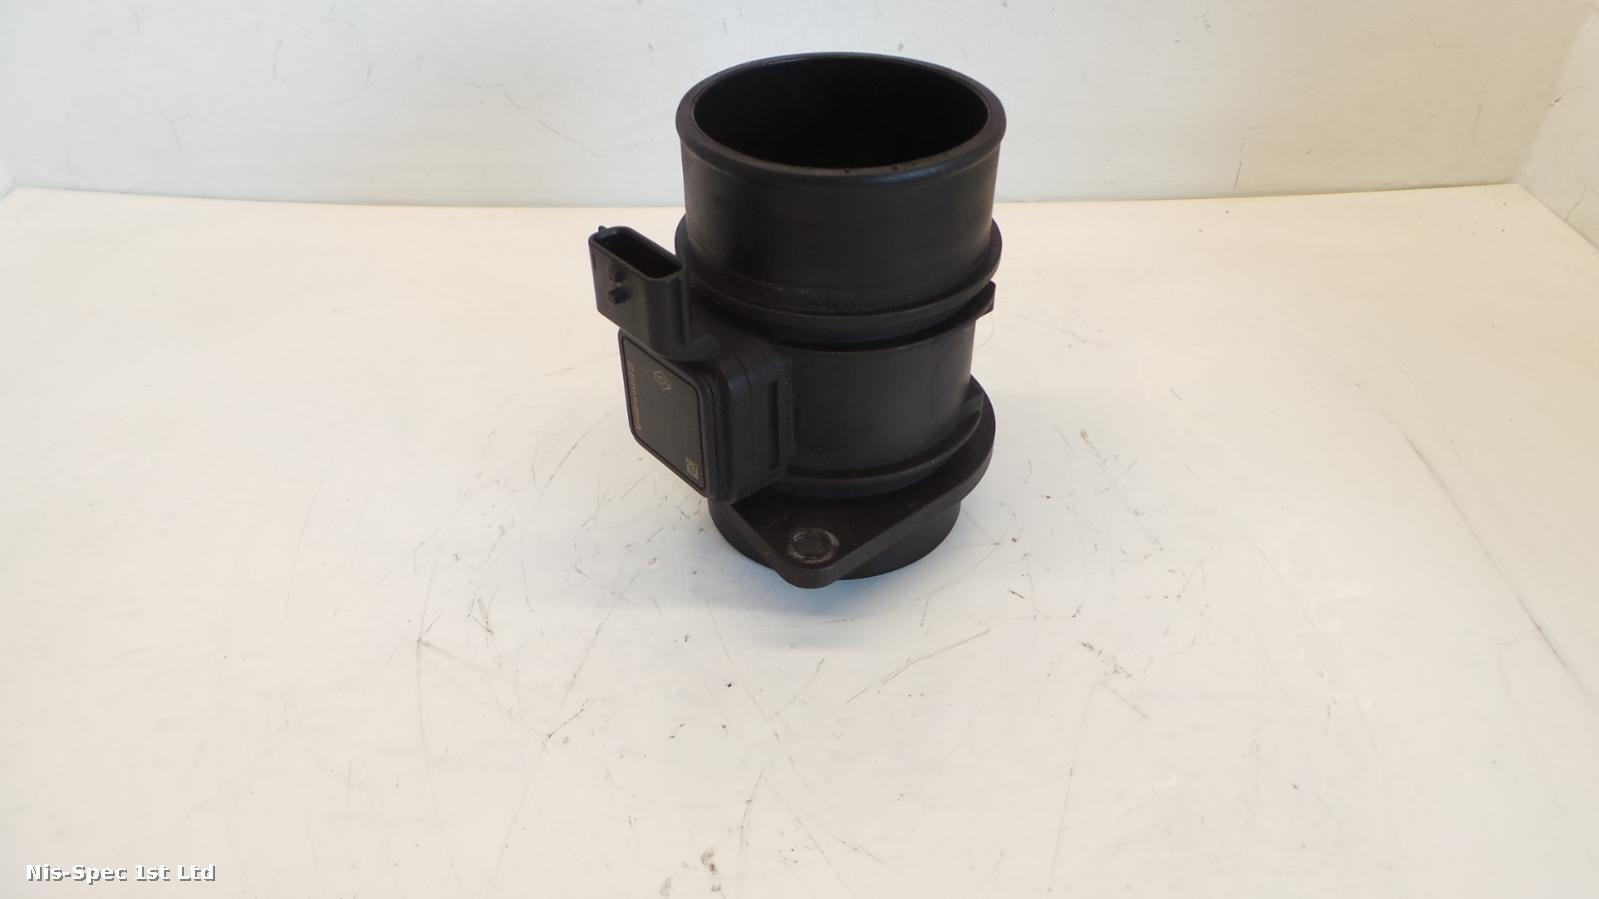 QASHQAI AIRFLOW METER PART NUMBER 8200280060 J10 06-13 1.5 DIESEL